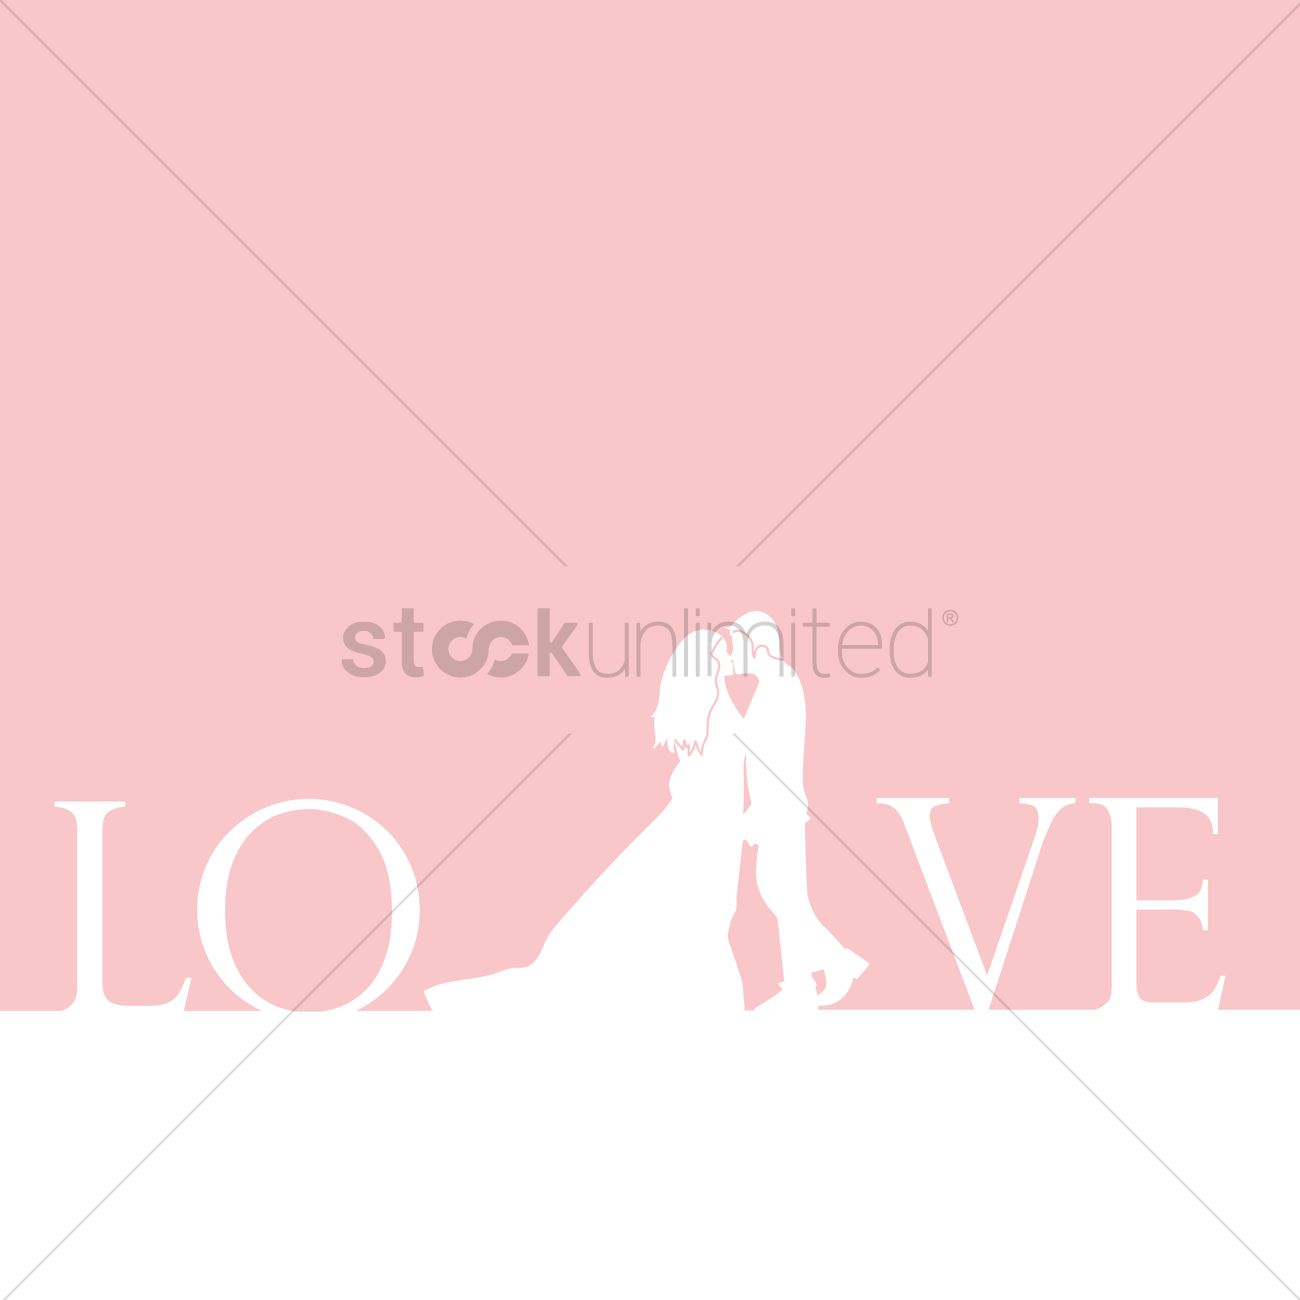 Vector Love cartoon Wallpaper : Love wallpaper Vector Image - 1703402 StockUnlimited